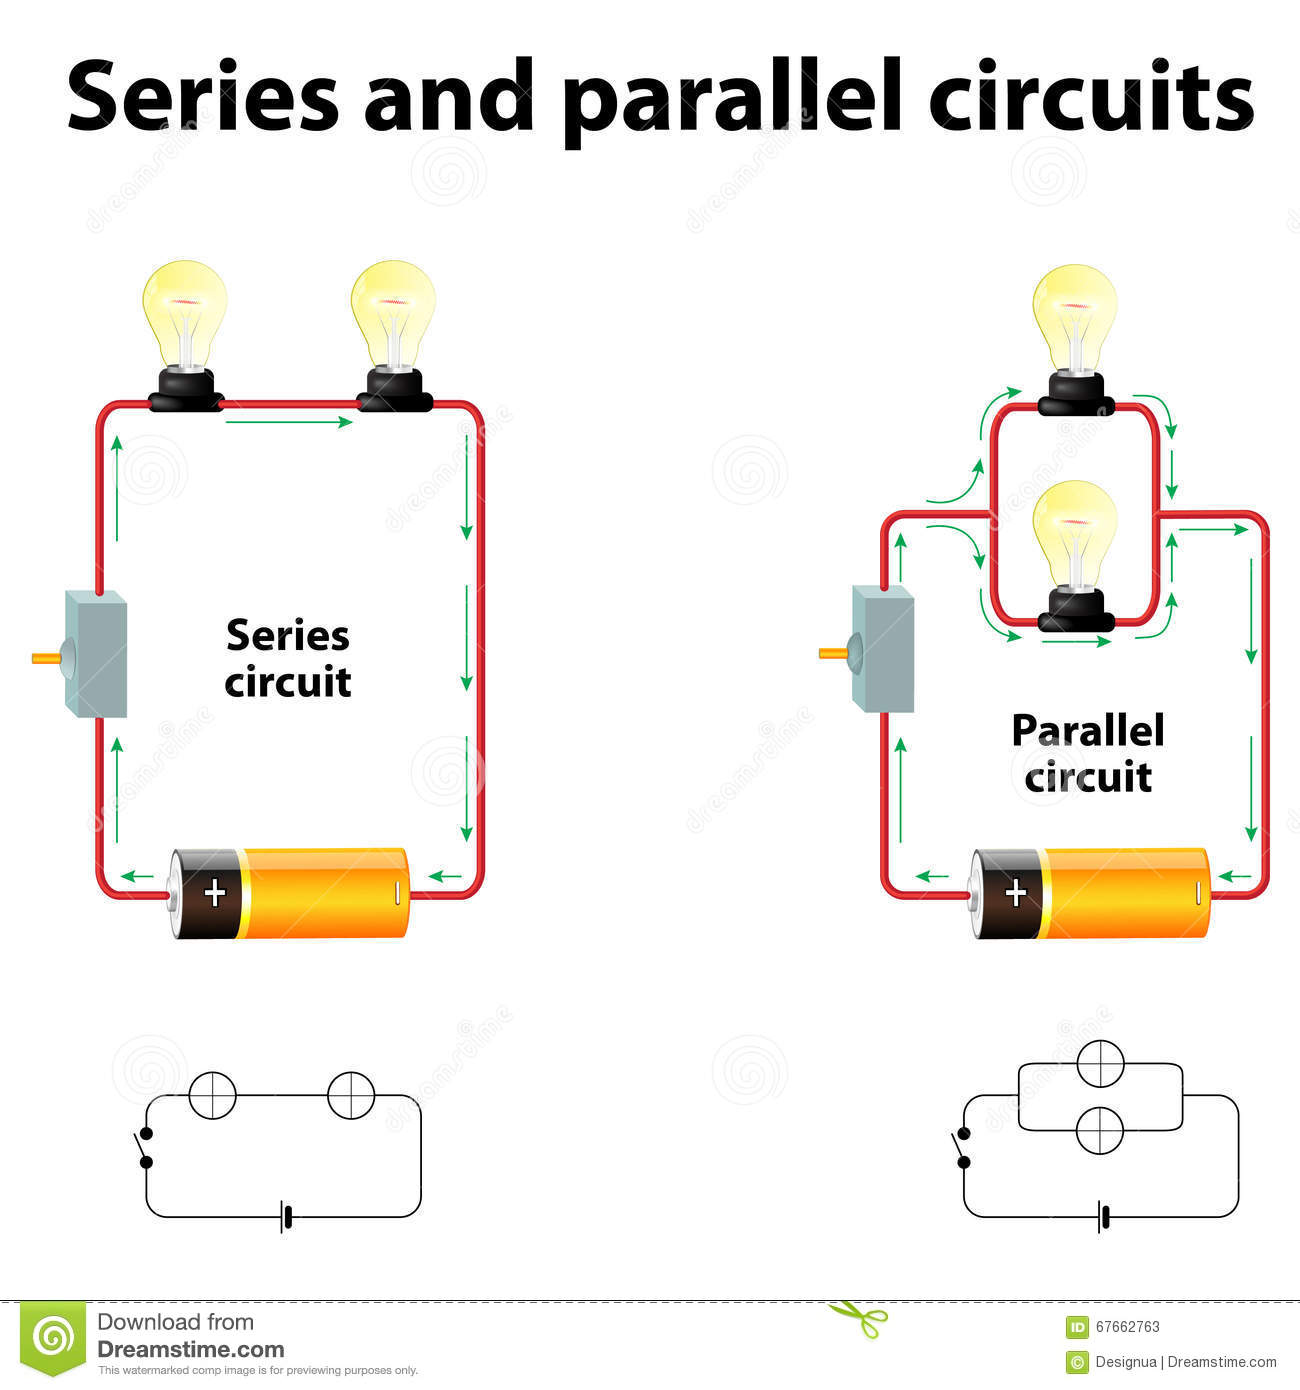 wiring in series diagram 1999 mitsubishi mirage radio and parallel circuits diagrams